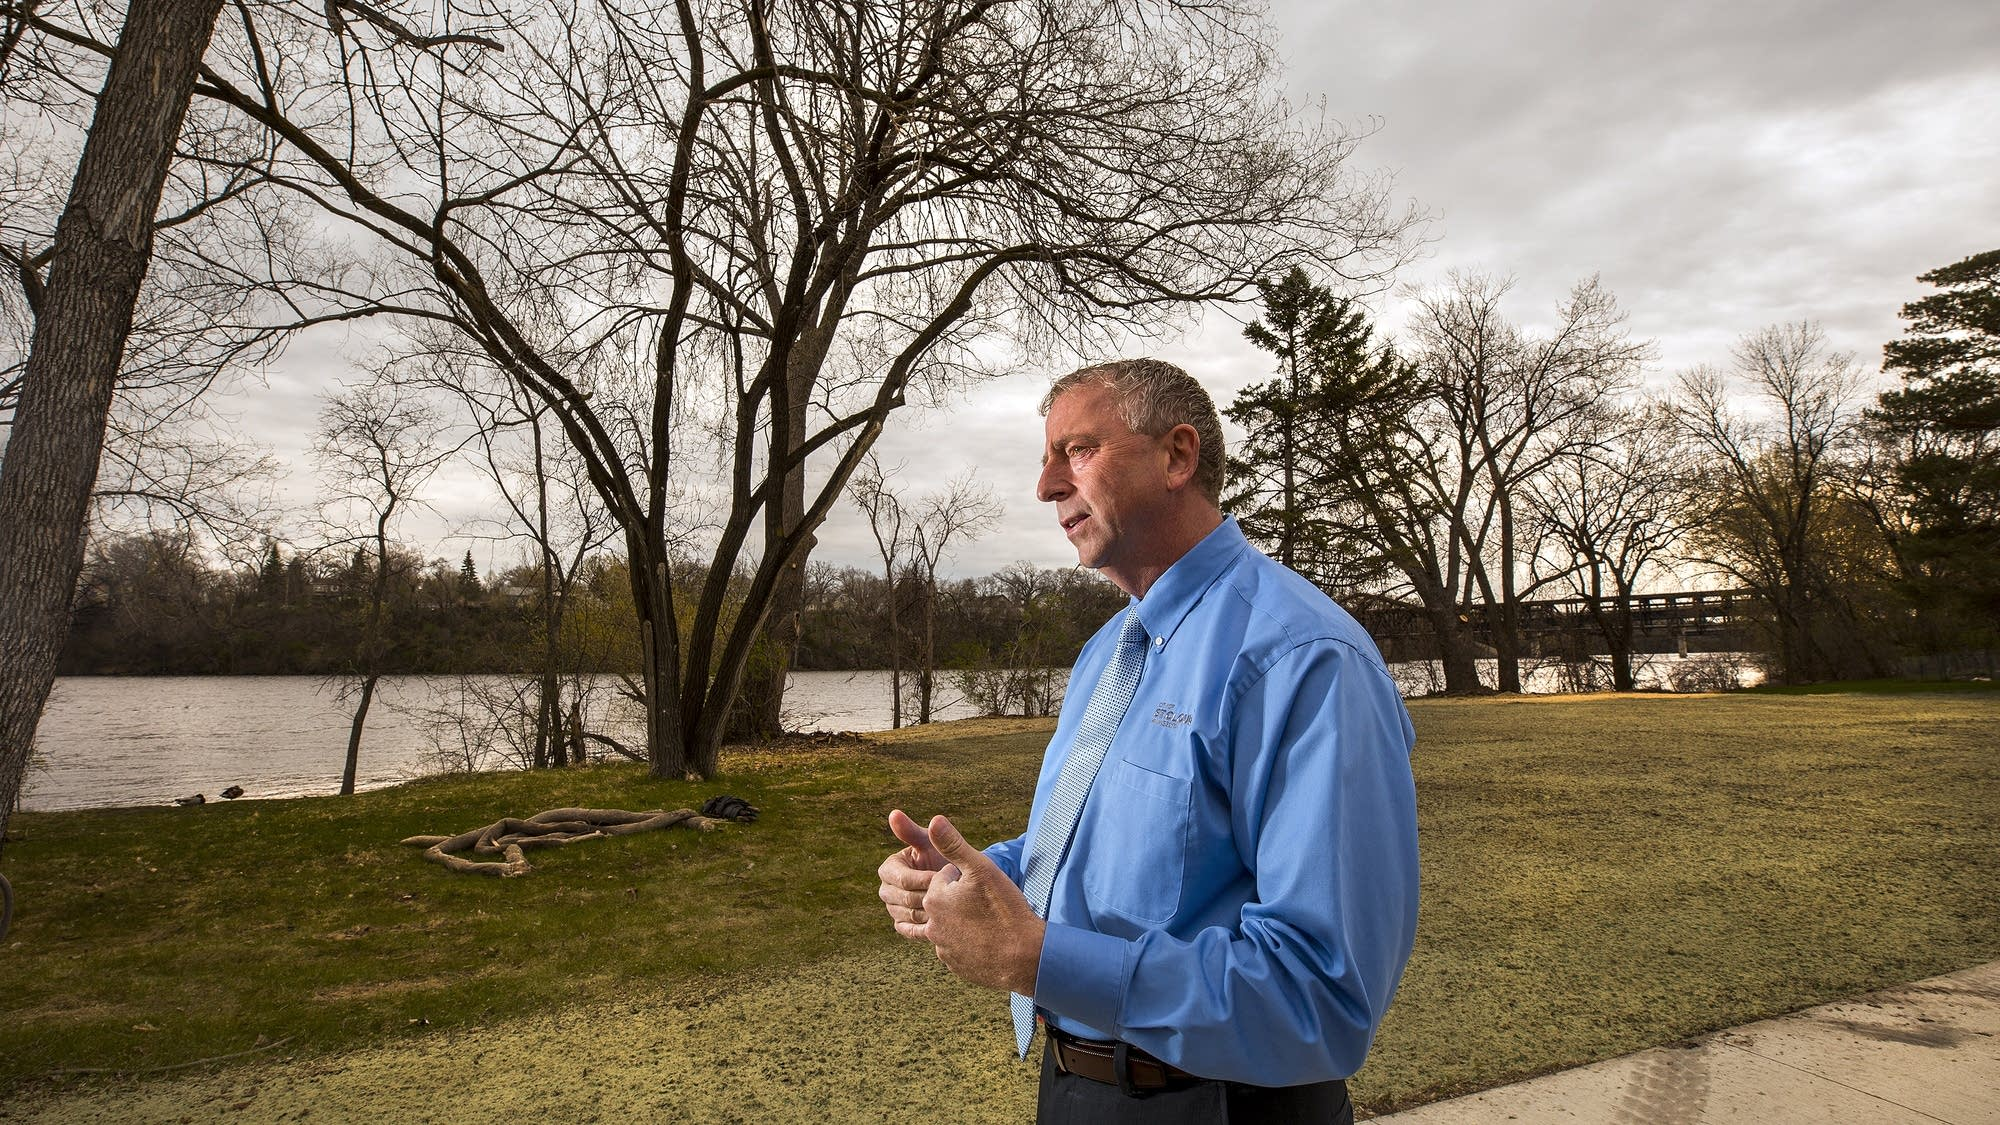 St. Cloud Mayor Dave Kleis talks about the city's newest park.